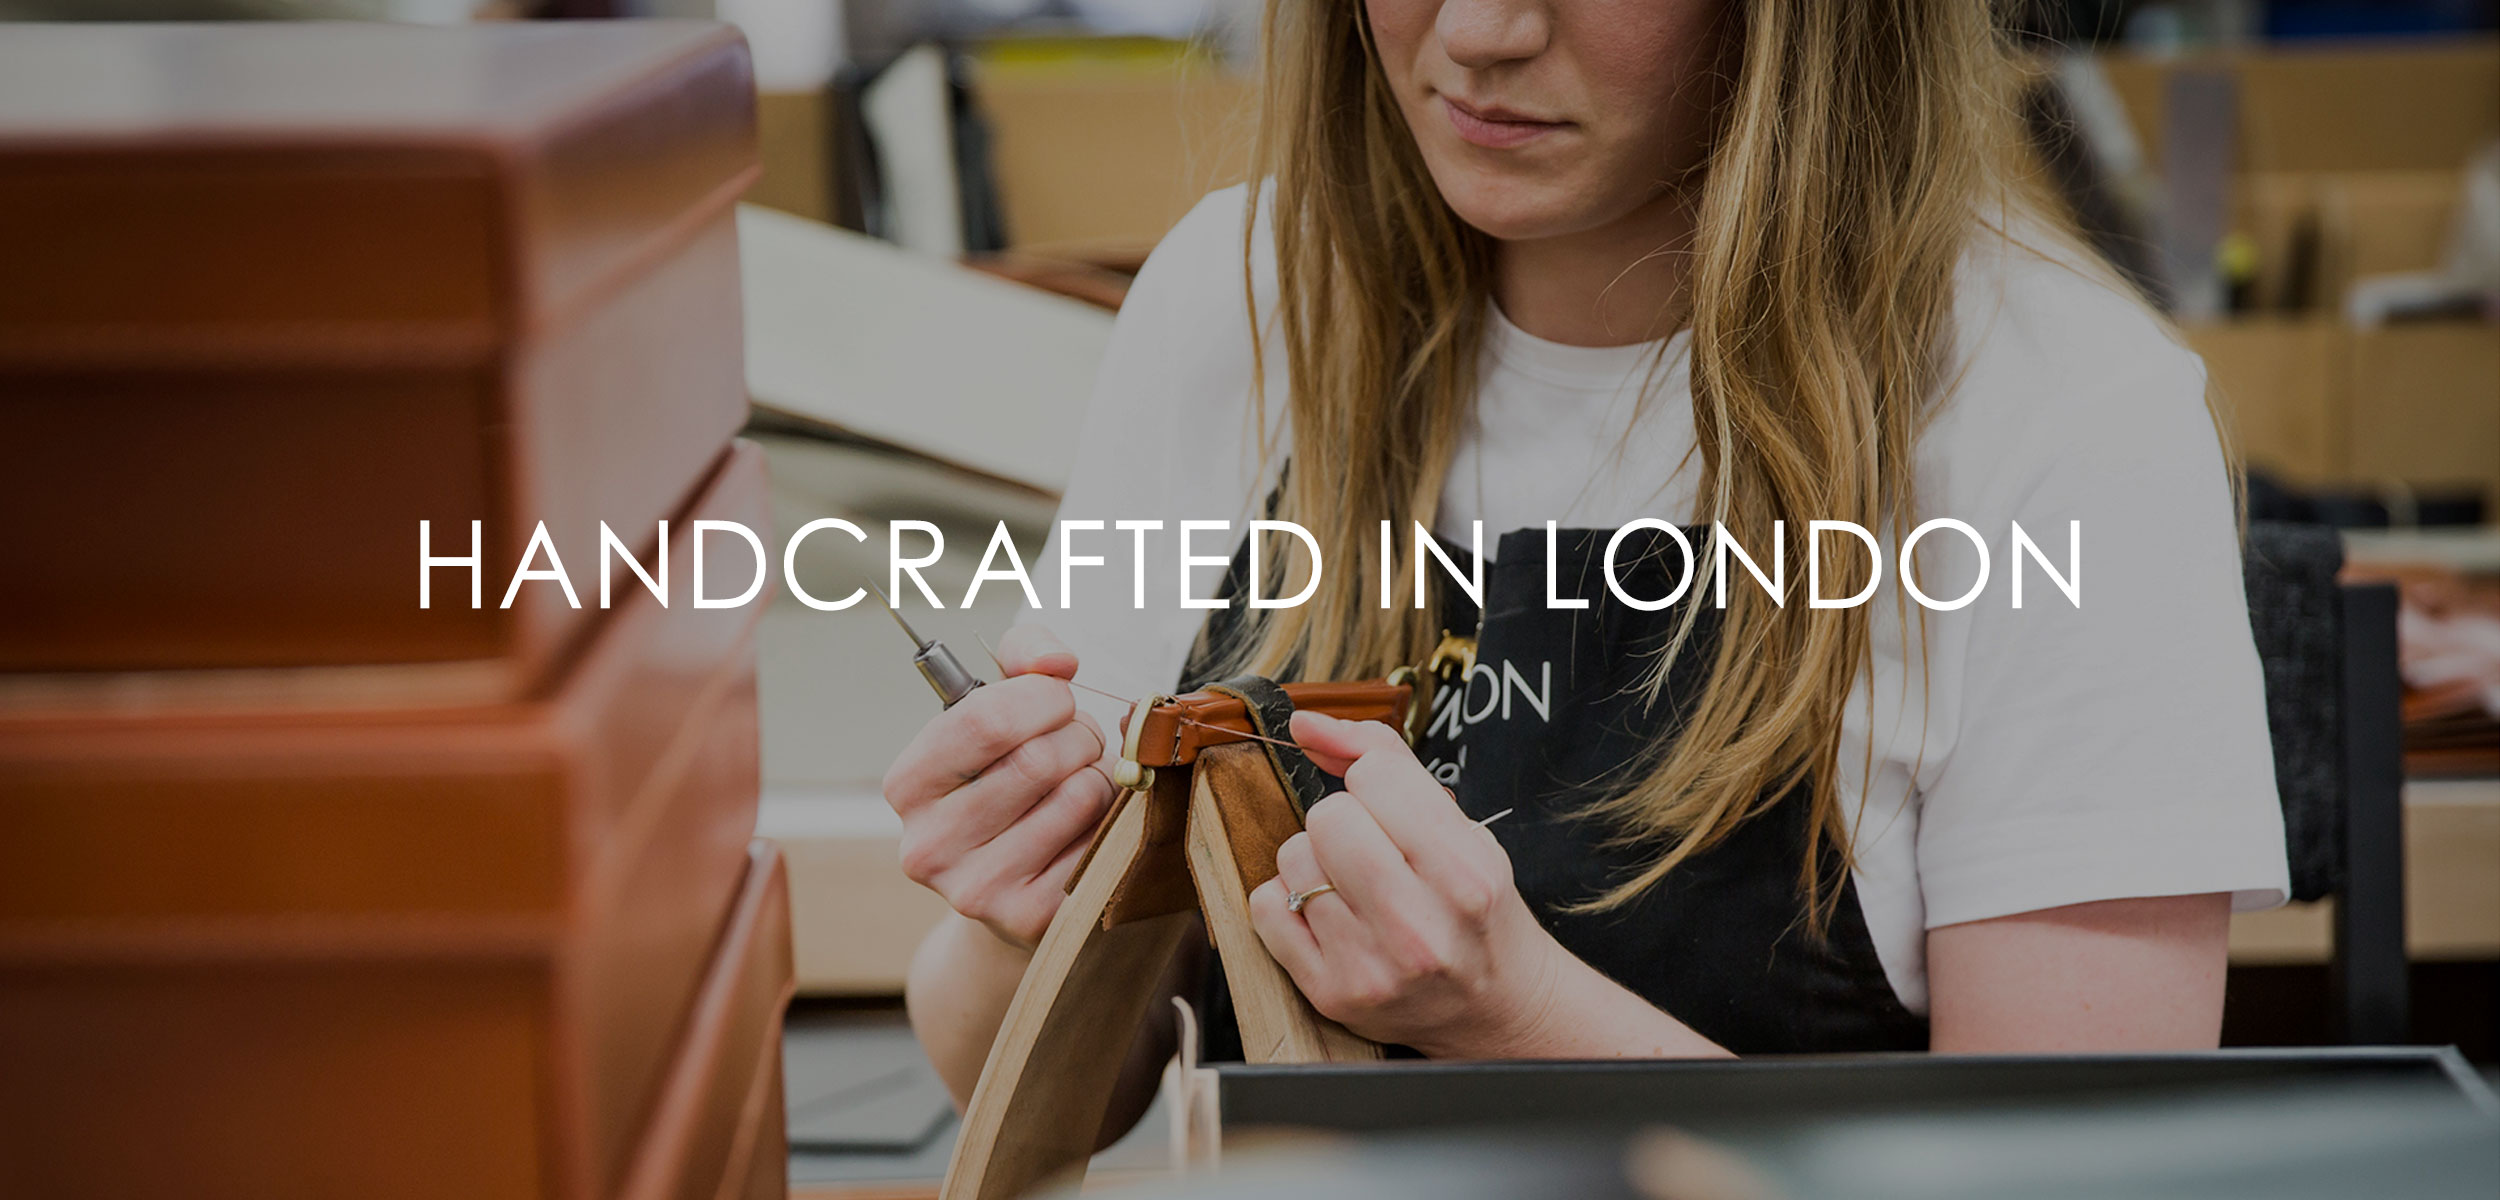 HANDCRAFTED IN LONDON